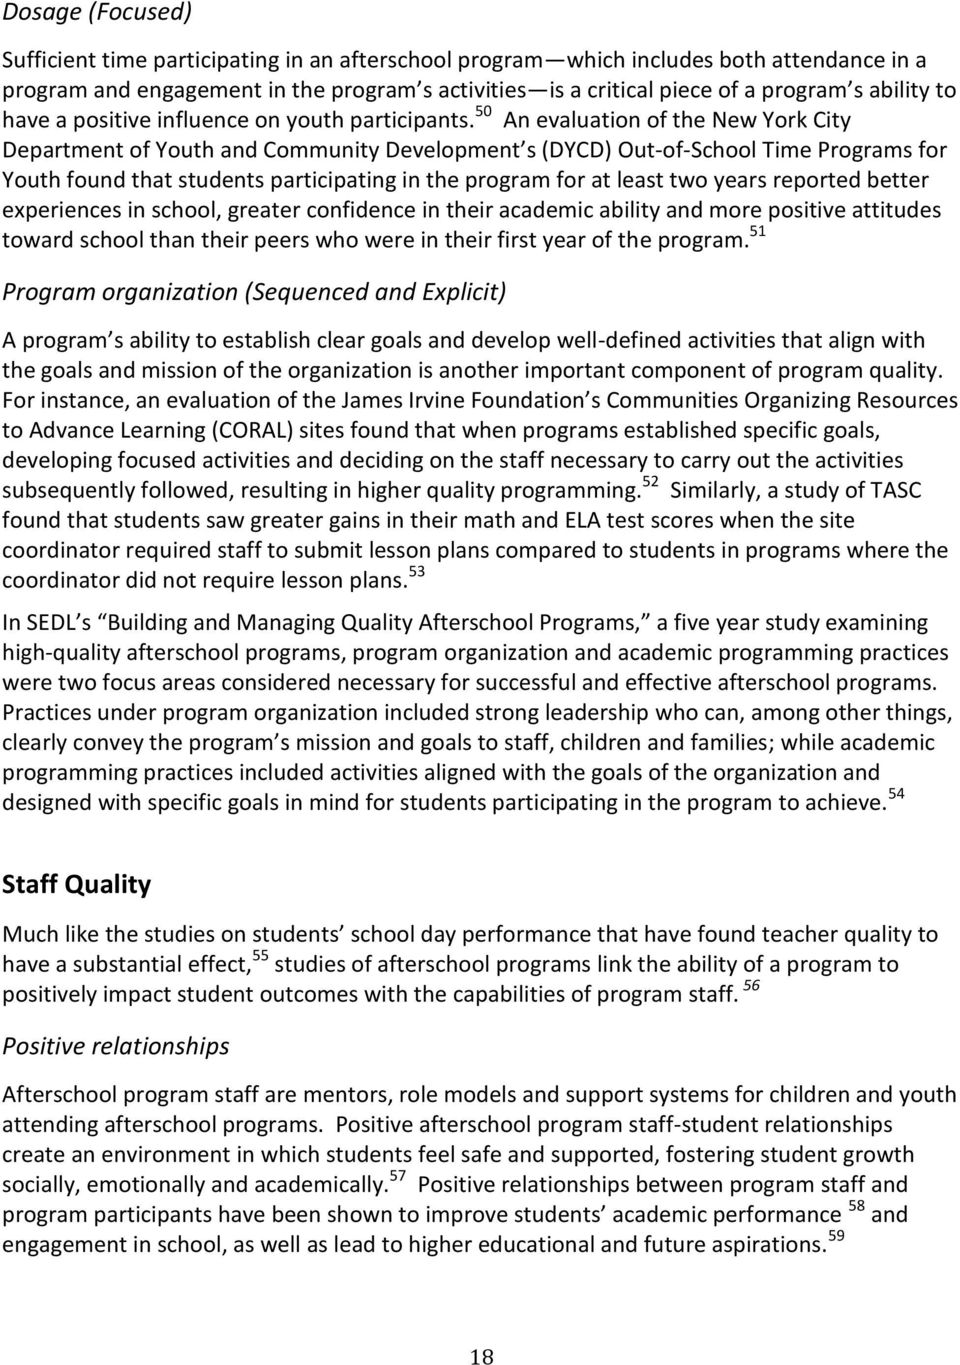 50 An evaluation of the New York City Department of Youth and Community Development s (DYCD) Out-of-School Time Programs for Youth found that students participating in the program for at least two